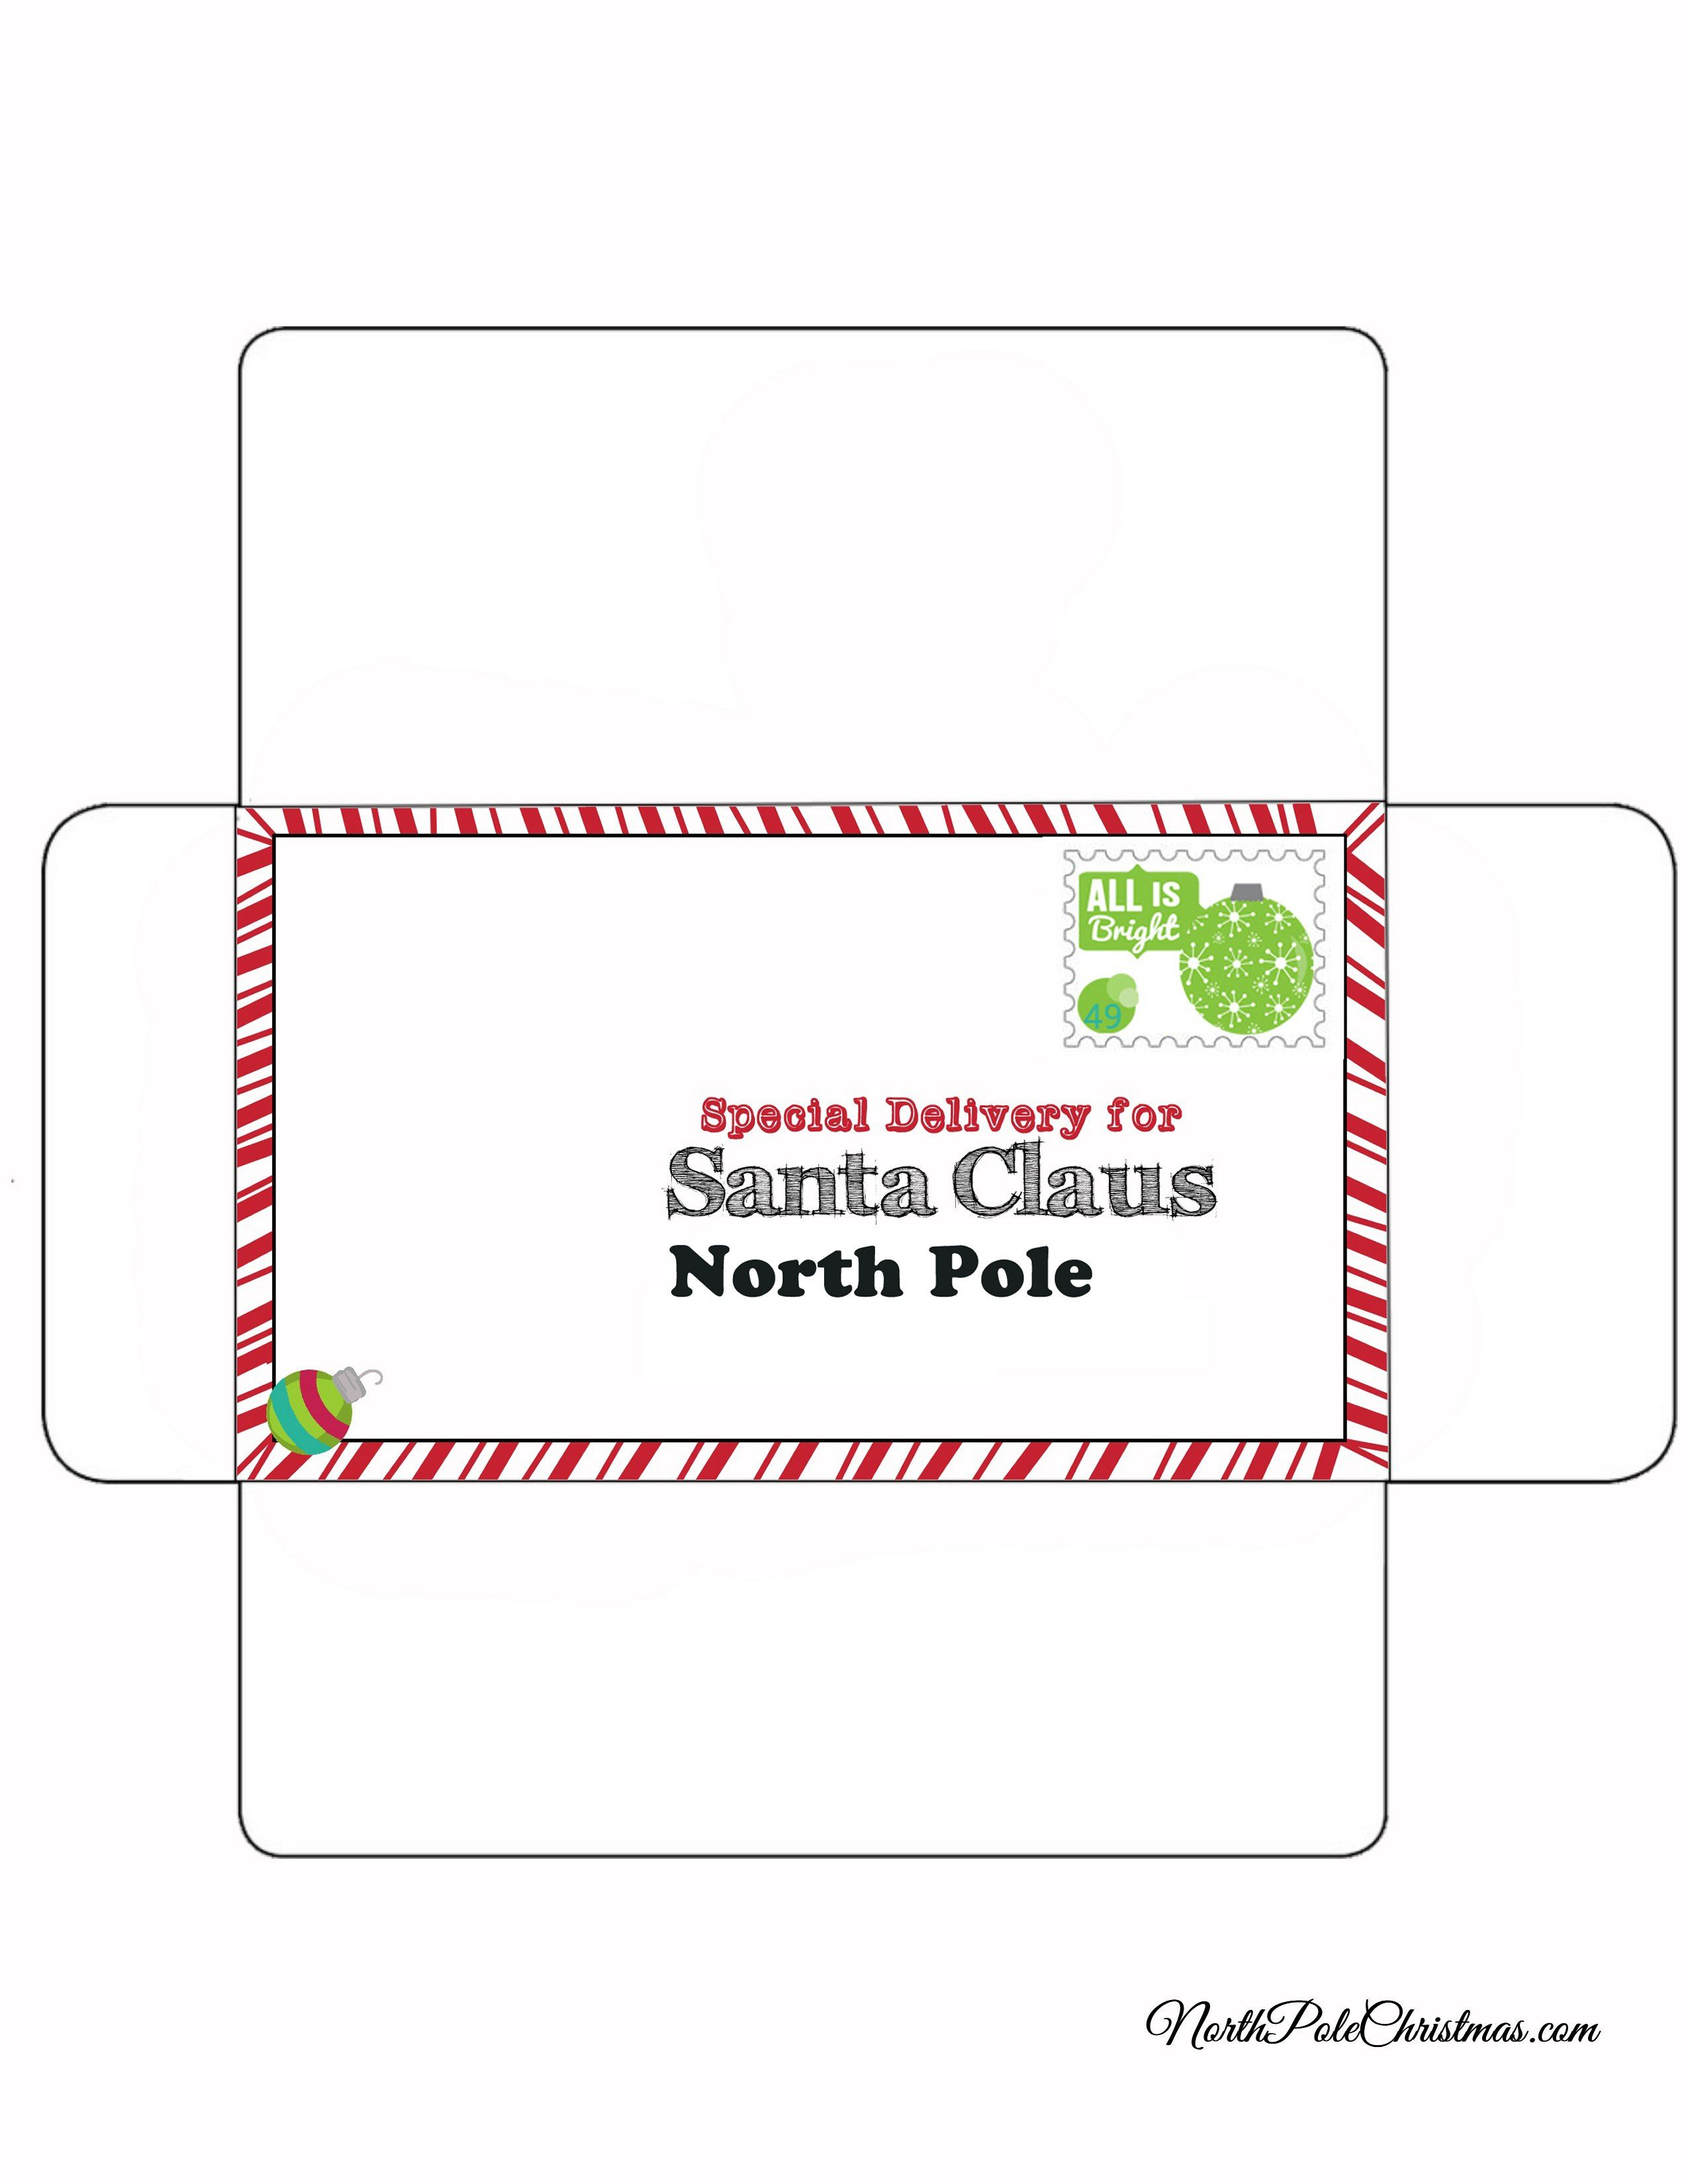 Envelope for Letter to Santa - Bright Stamp - NorthPoleChristmas.com